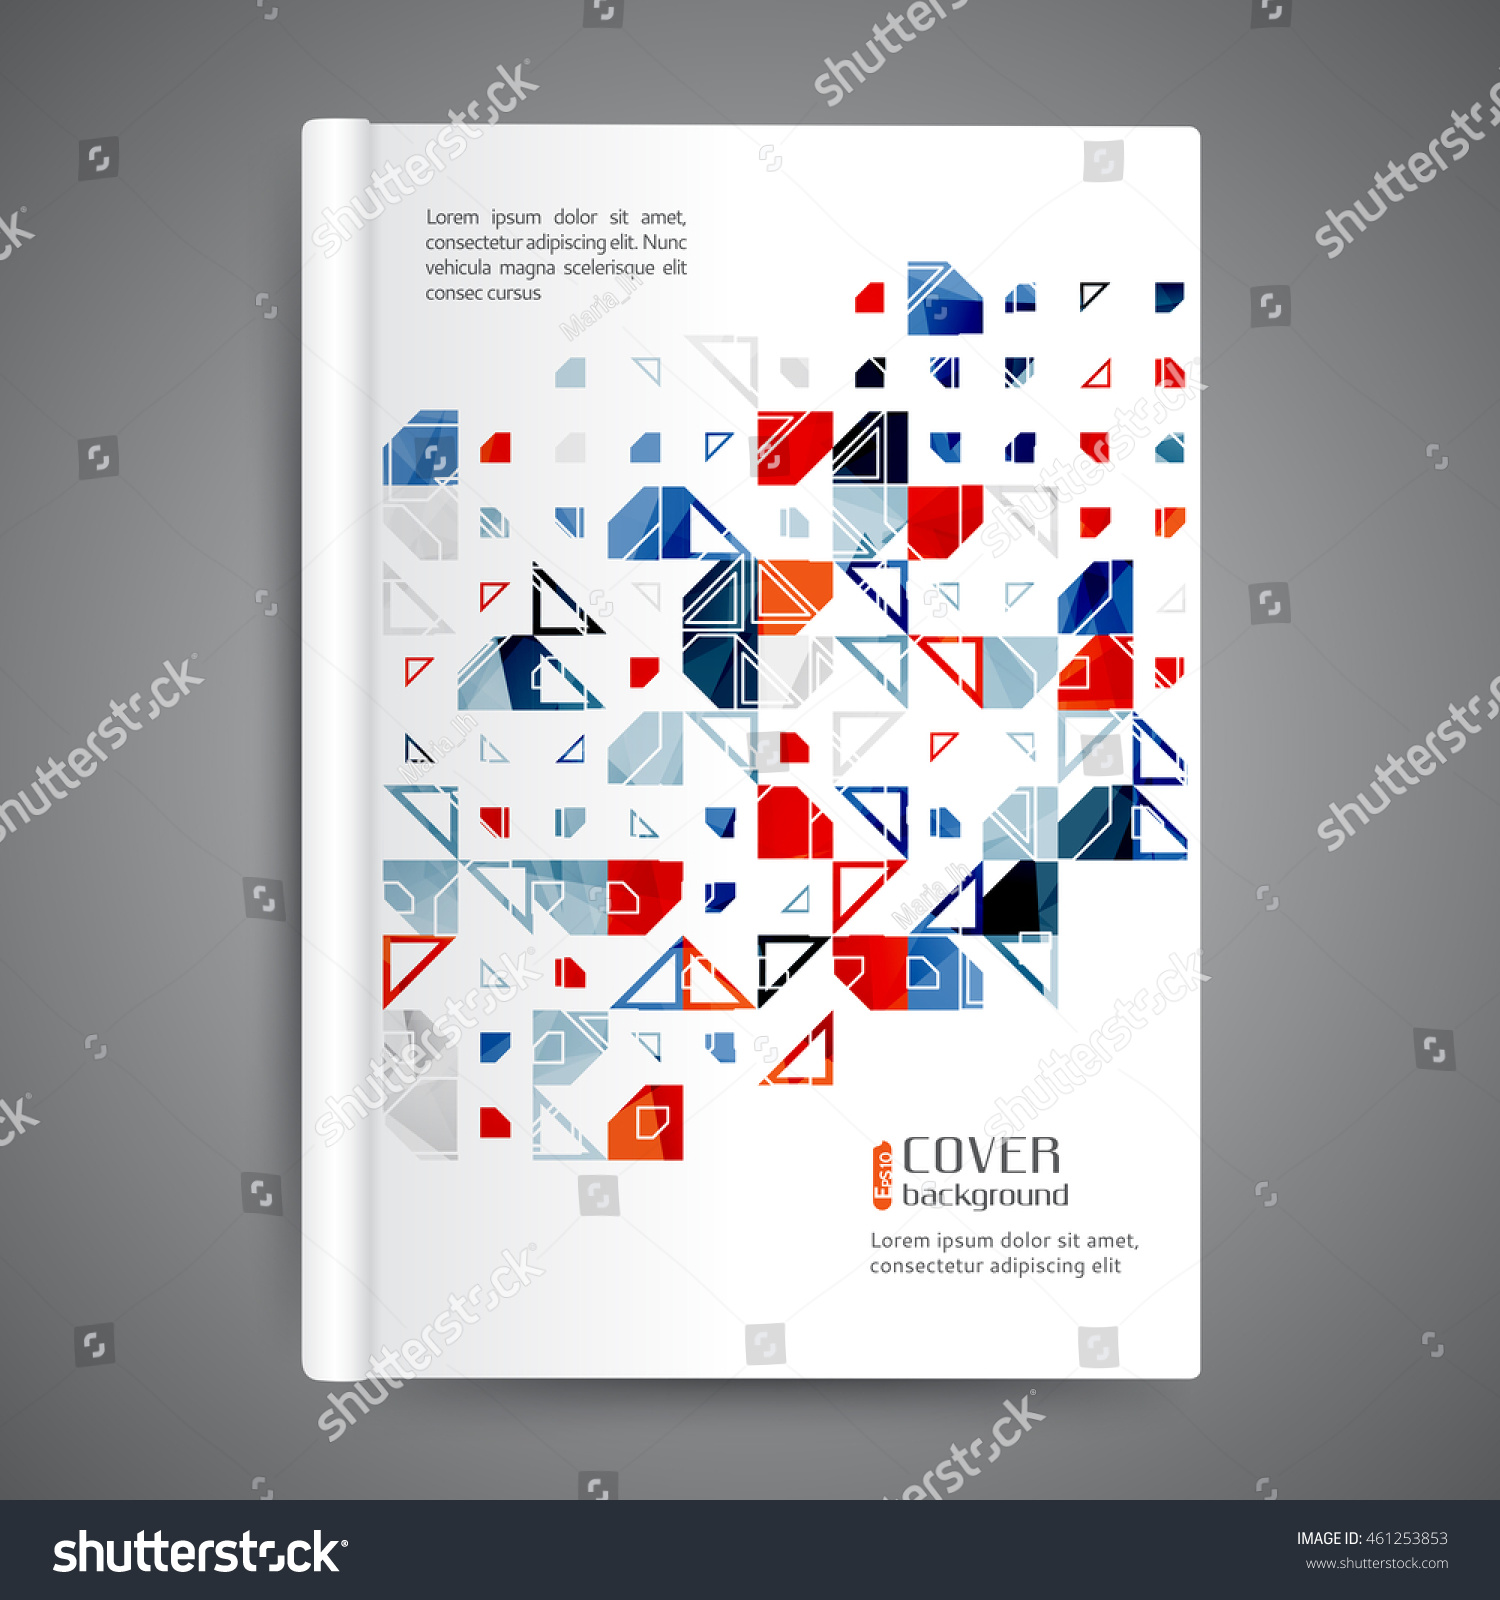 Book Cover Design Elements : Color book design template annual report stock vector